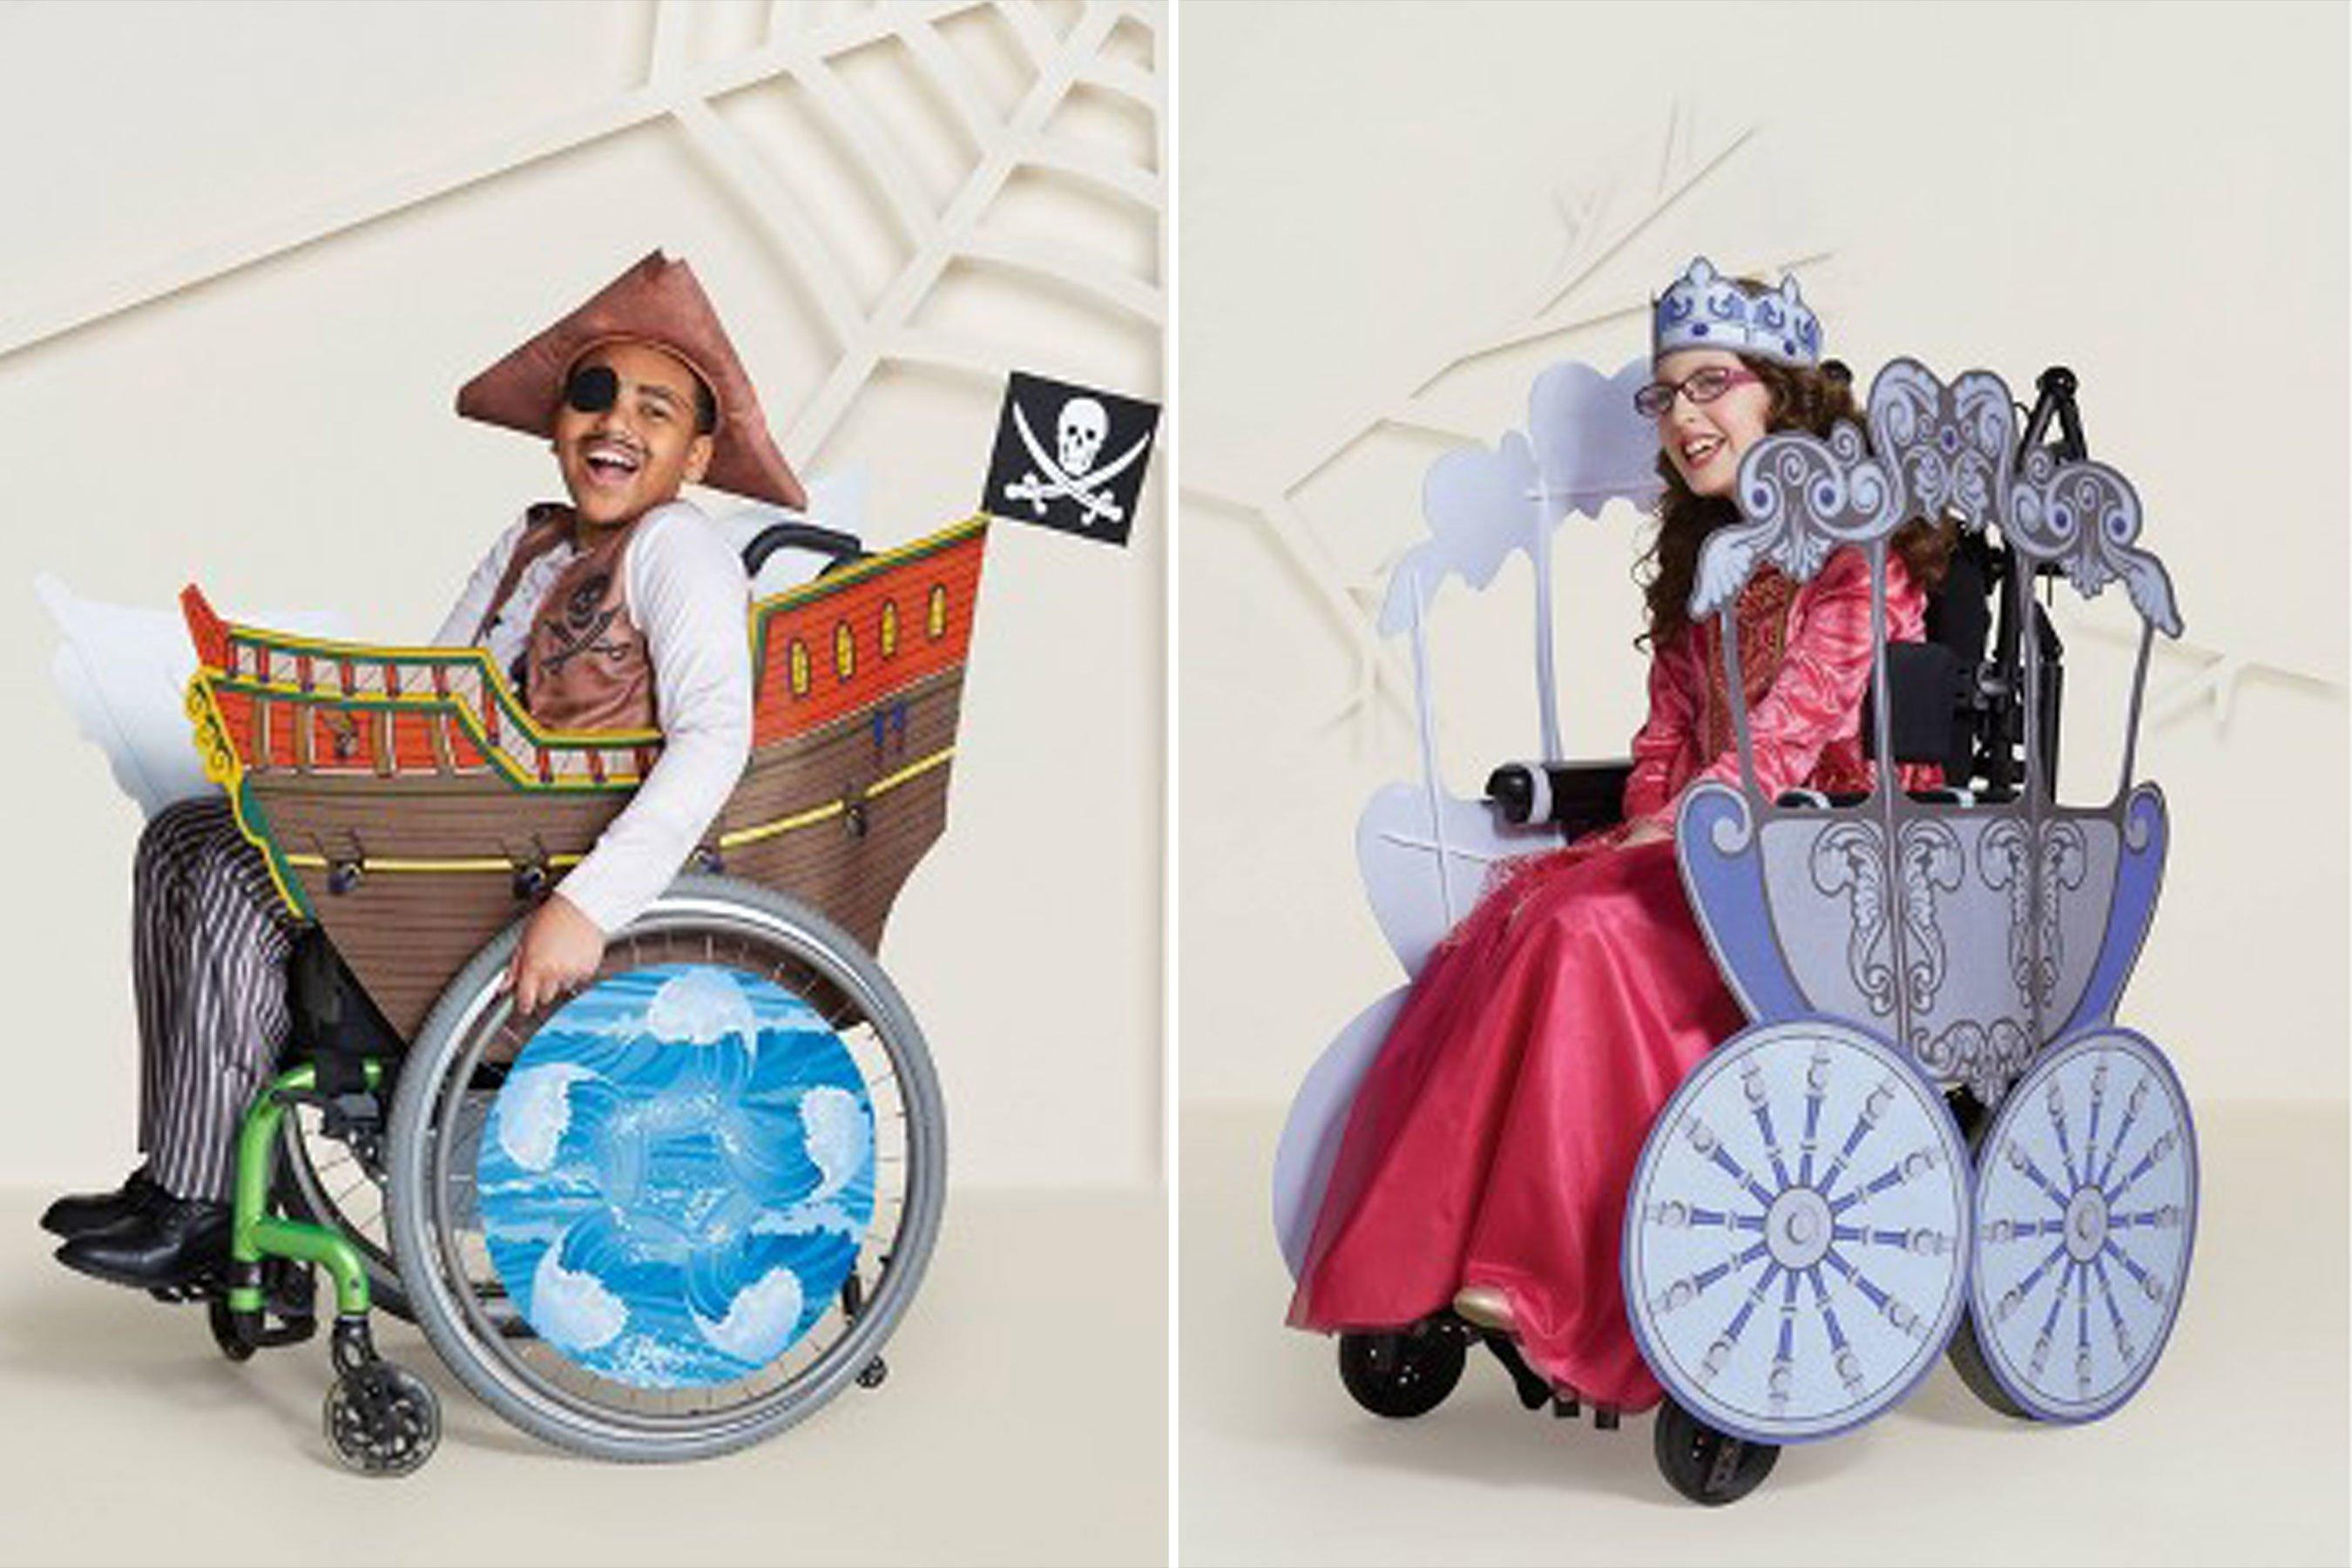 Students With Special Needs Face Double >> Target Introduces Adaptive Halloween Costumes For Kids With Special